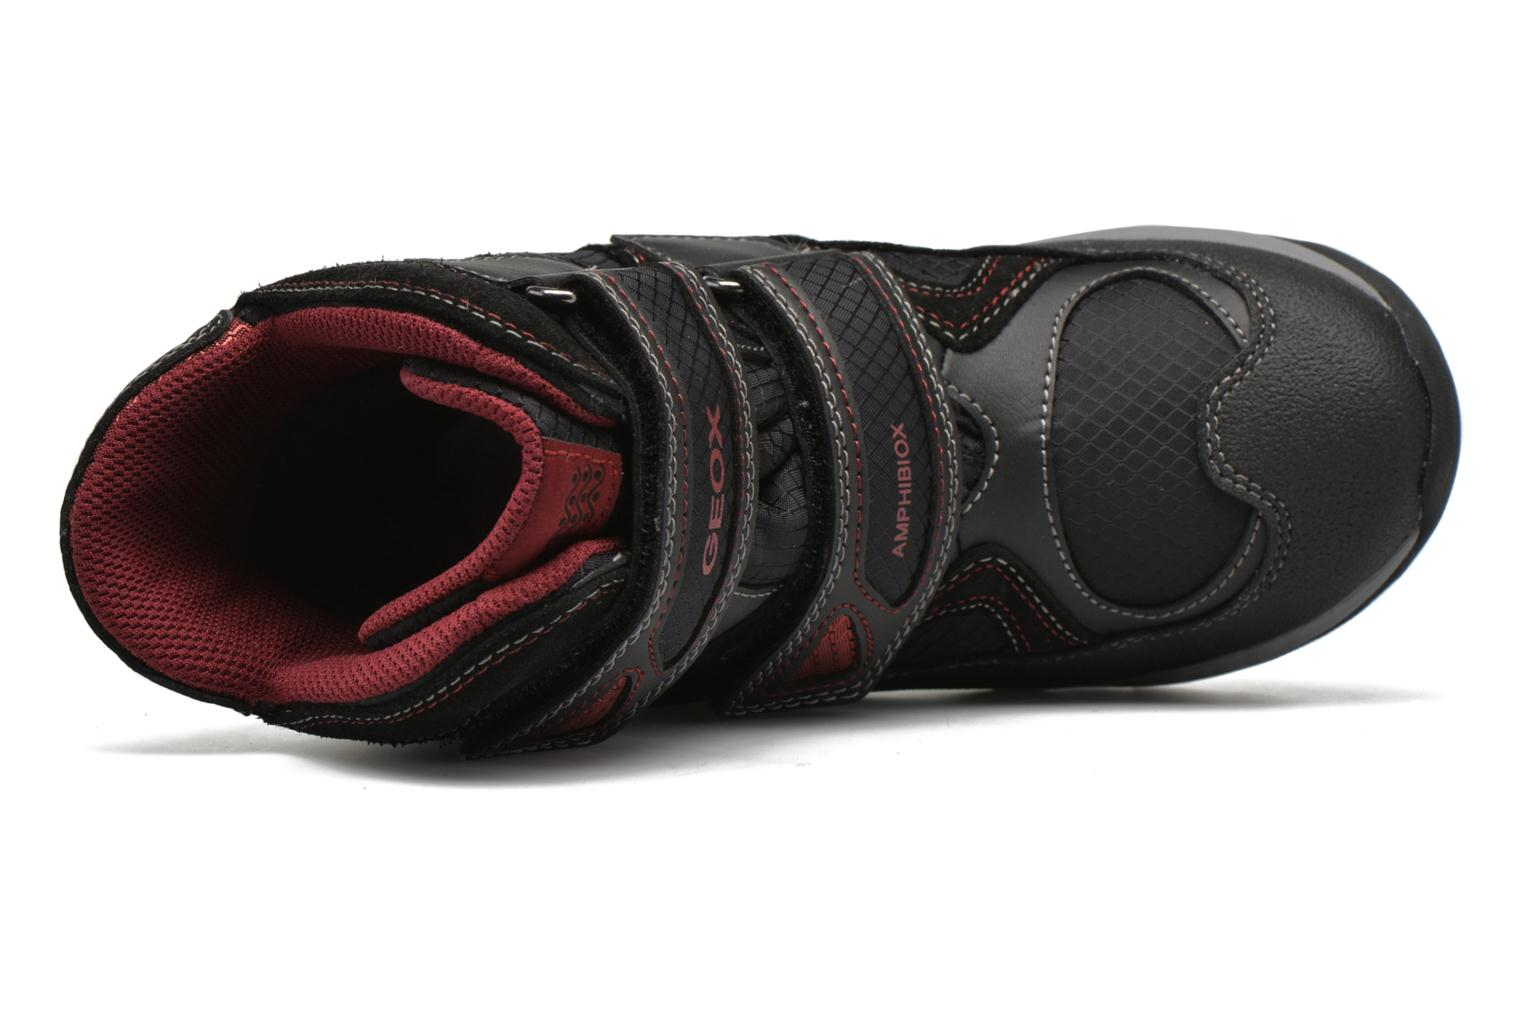 J Orizont B Abx C J640BC Black/red